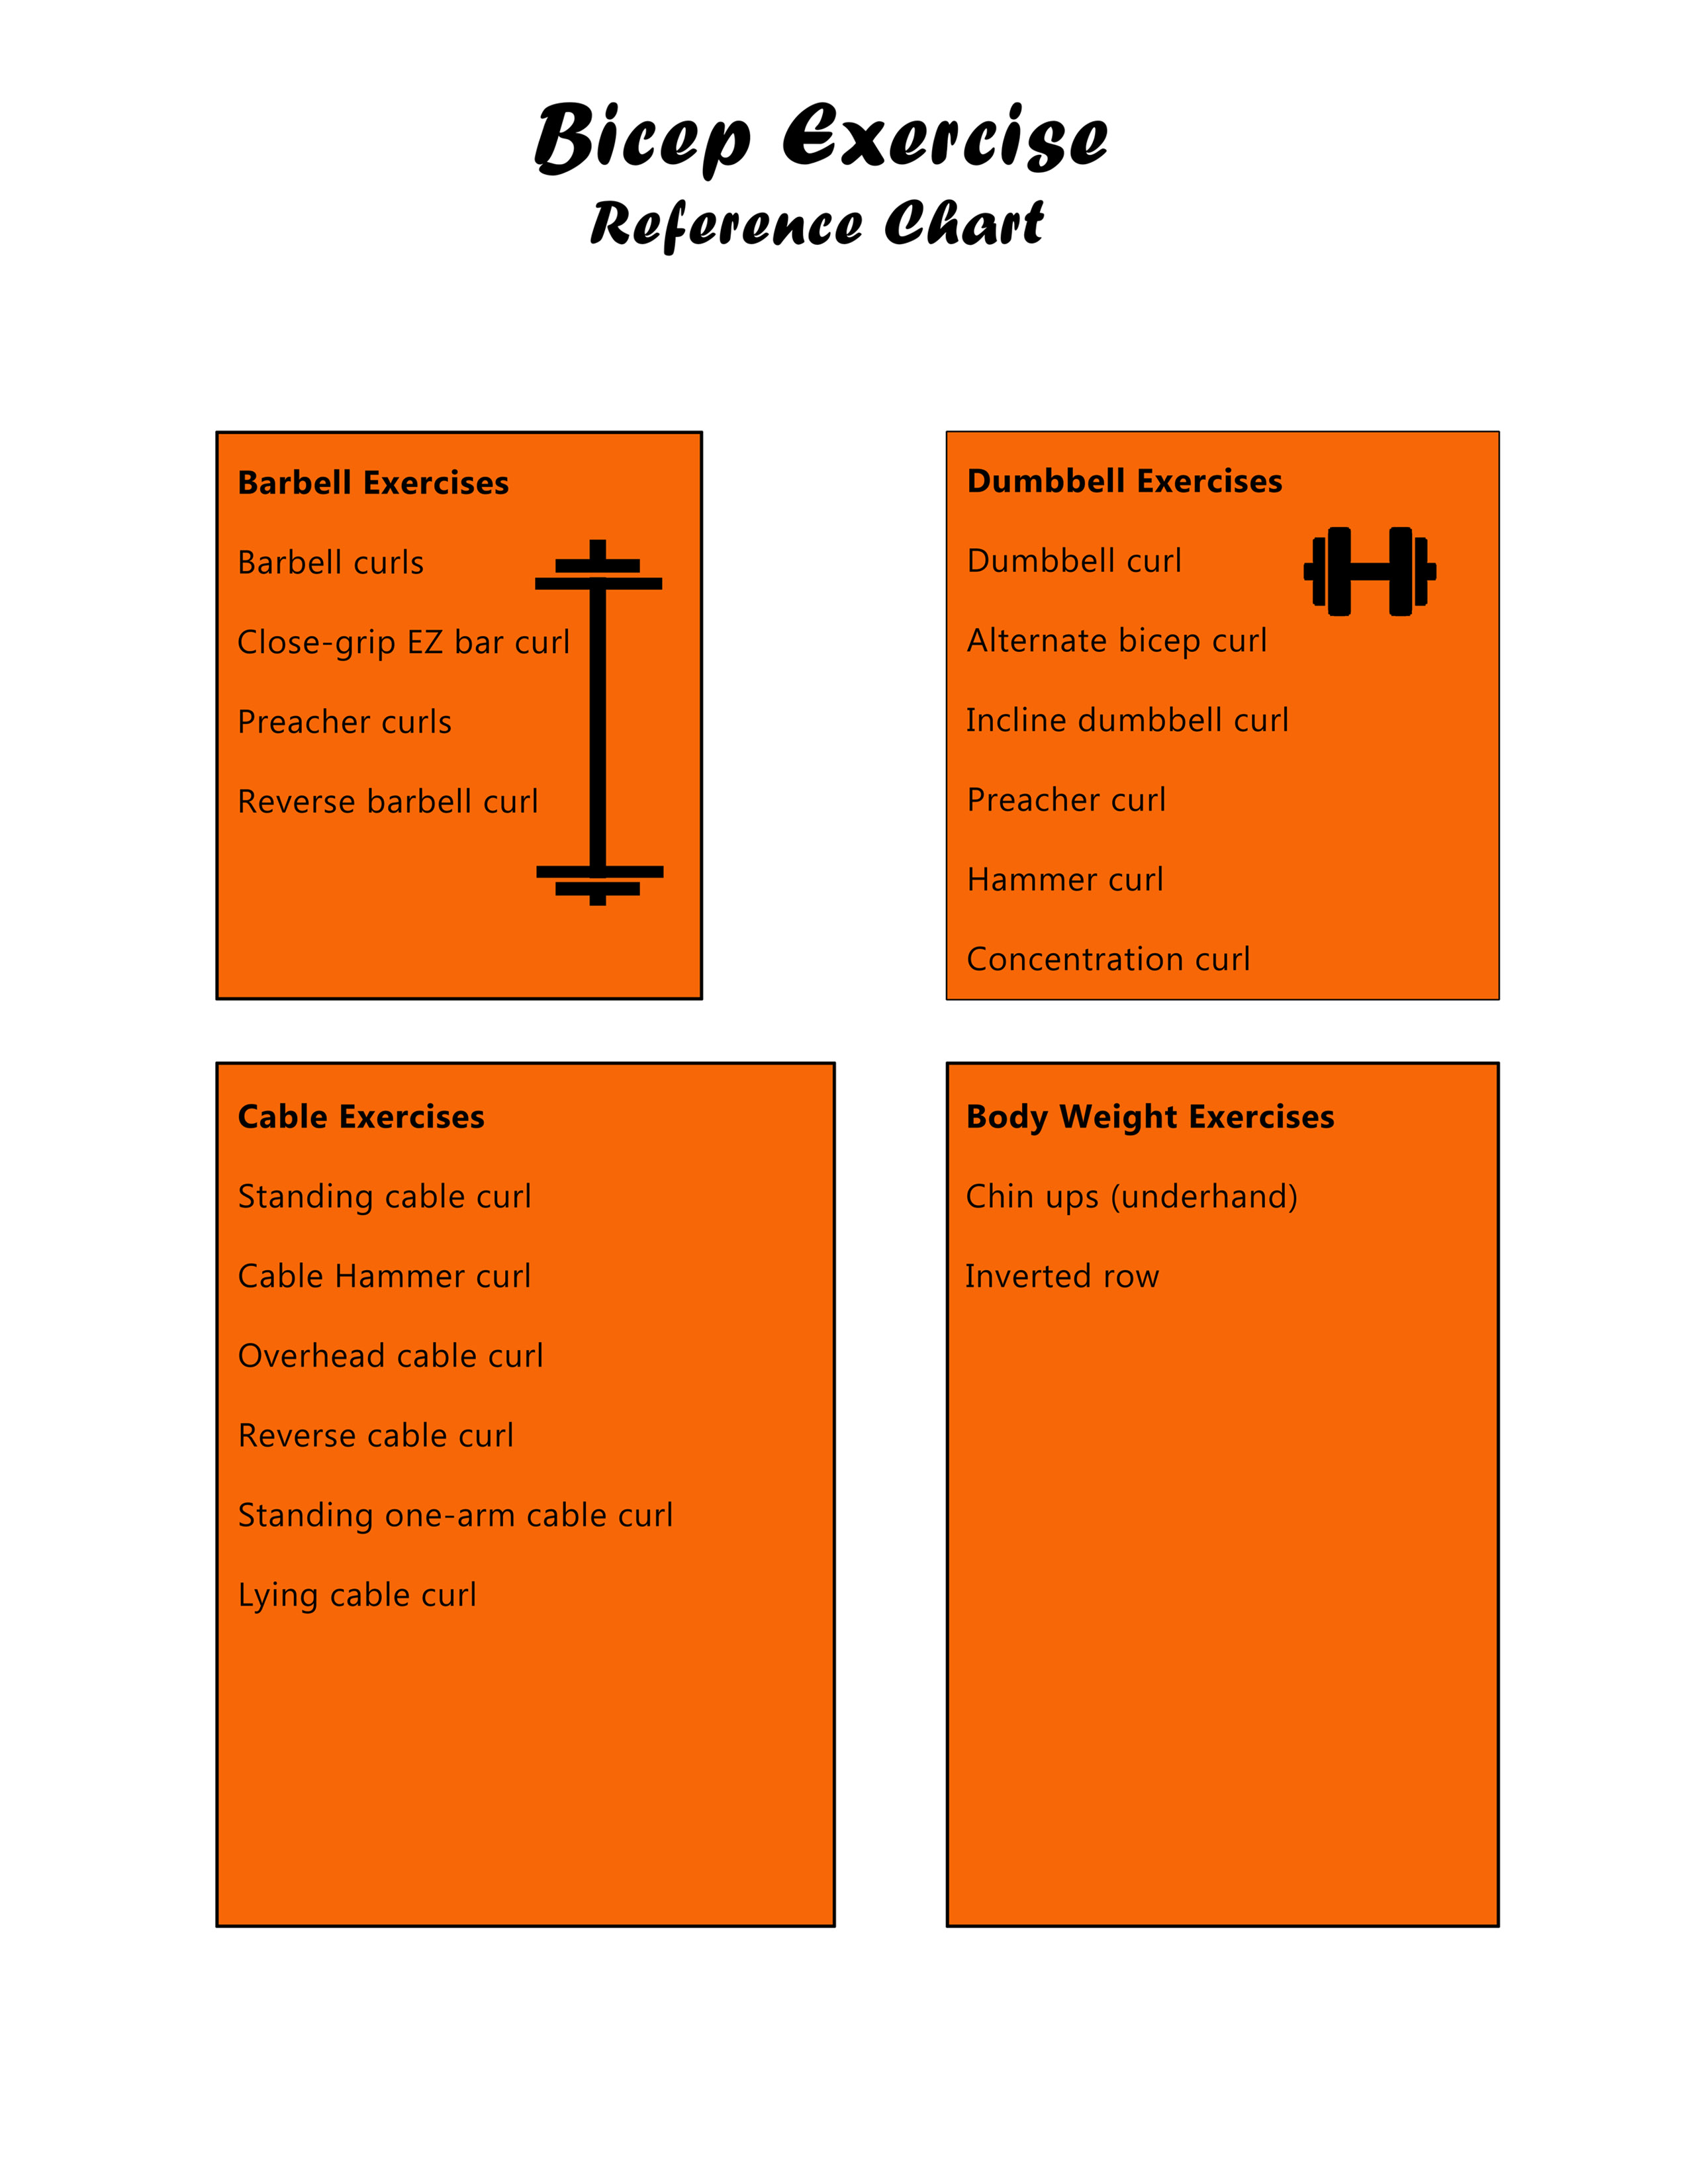 Printable reference chart with a list of the best bicep exercises.